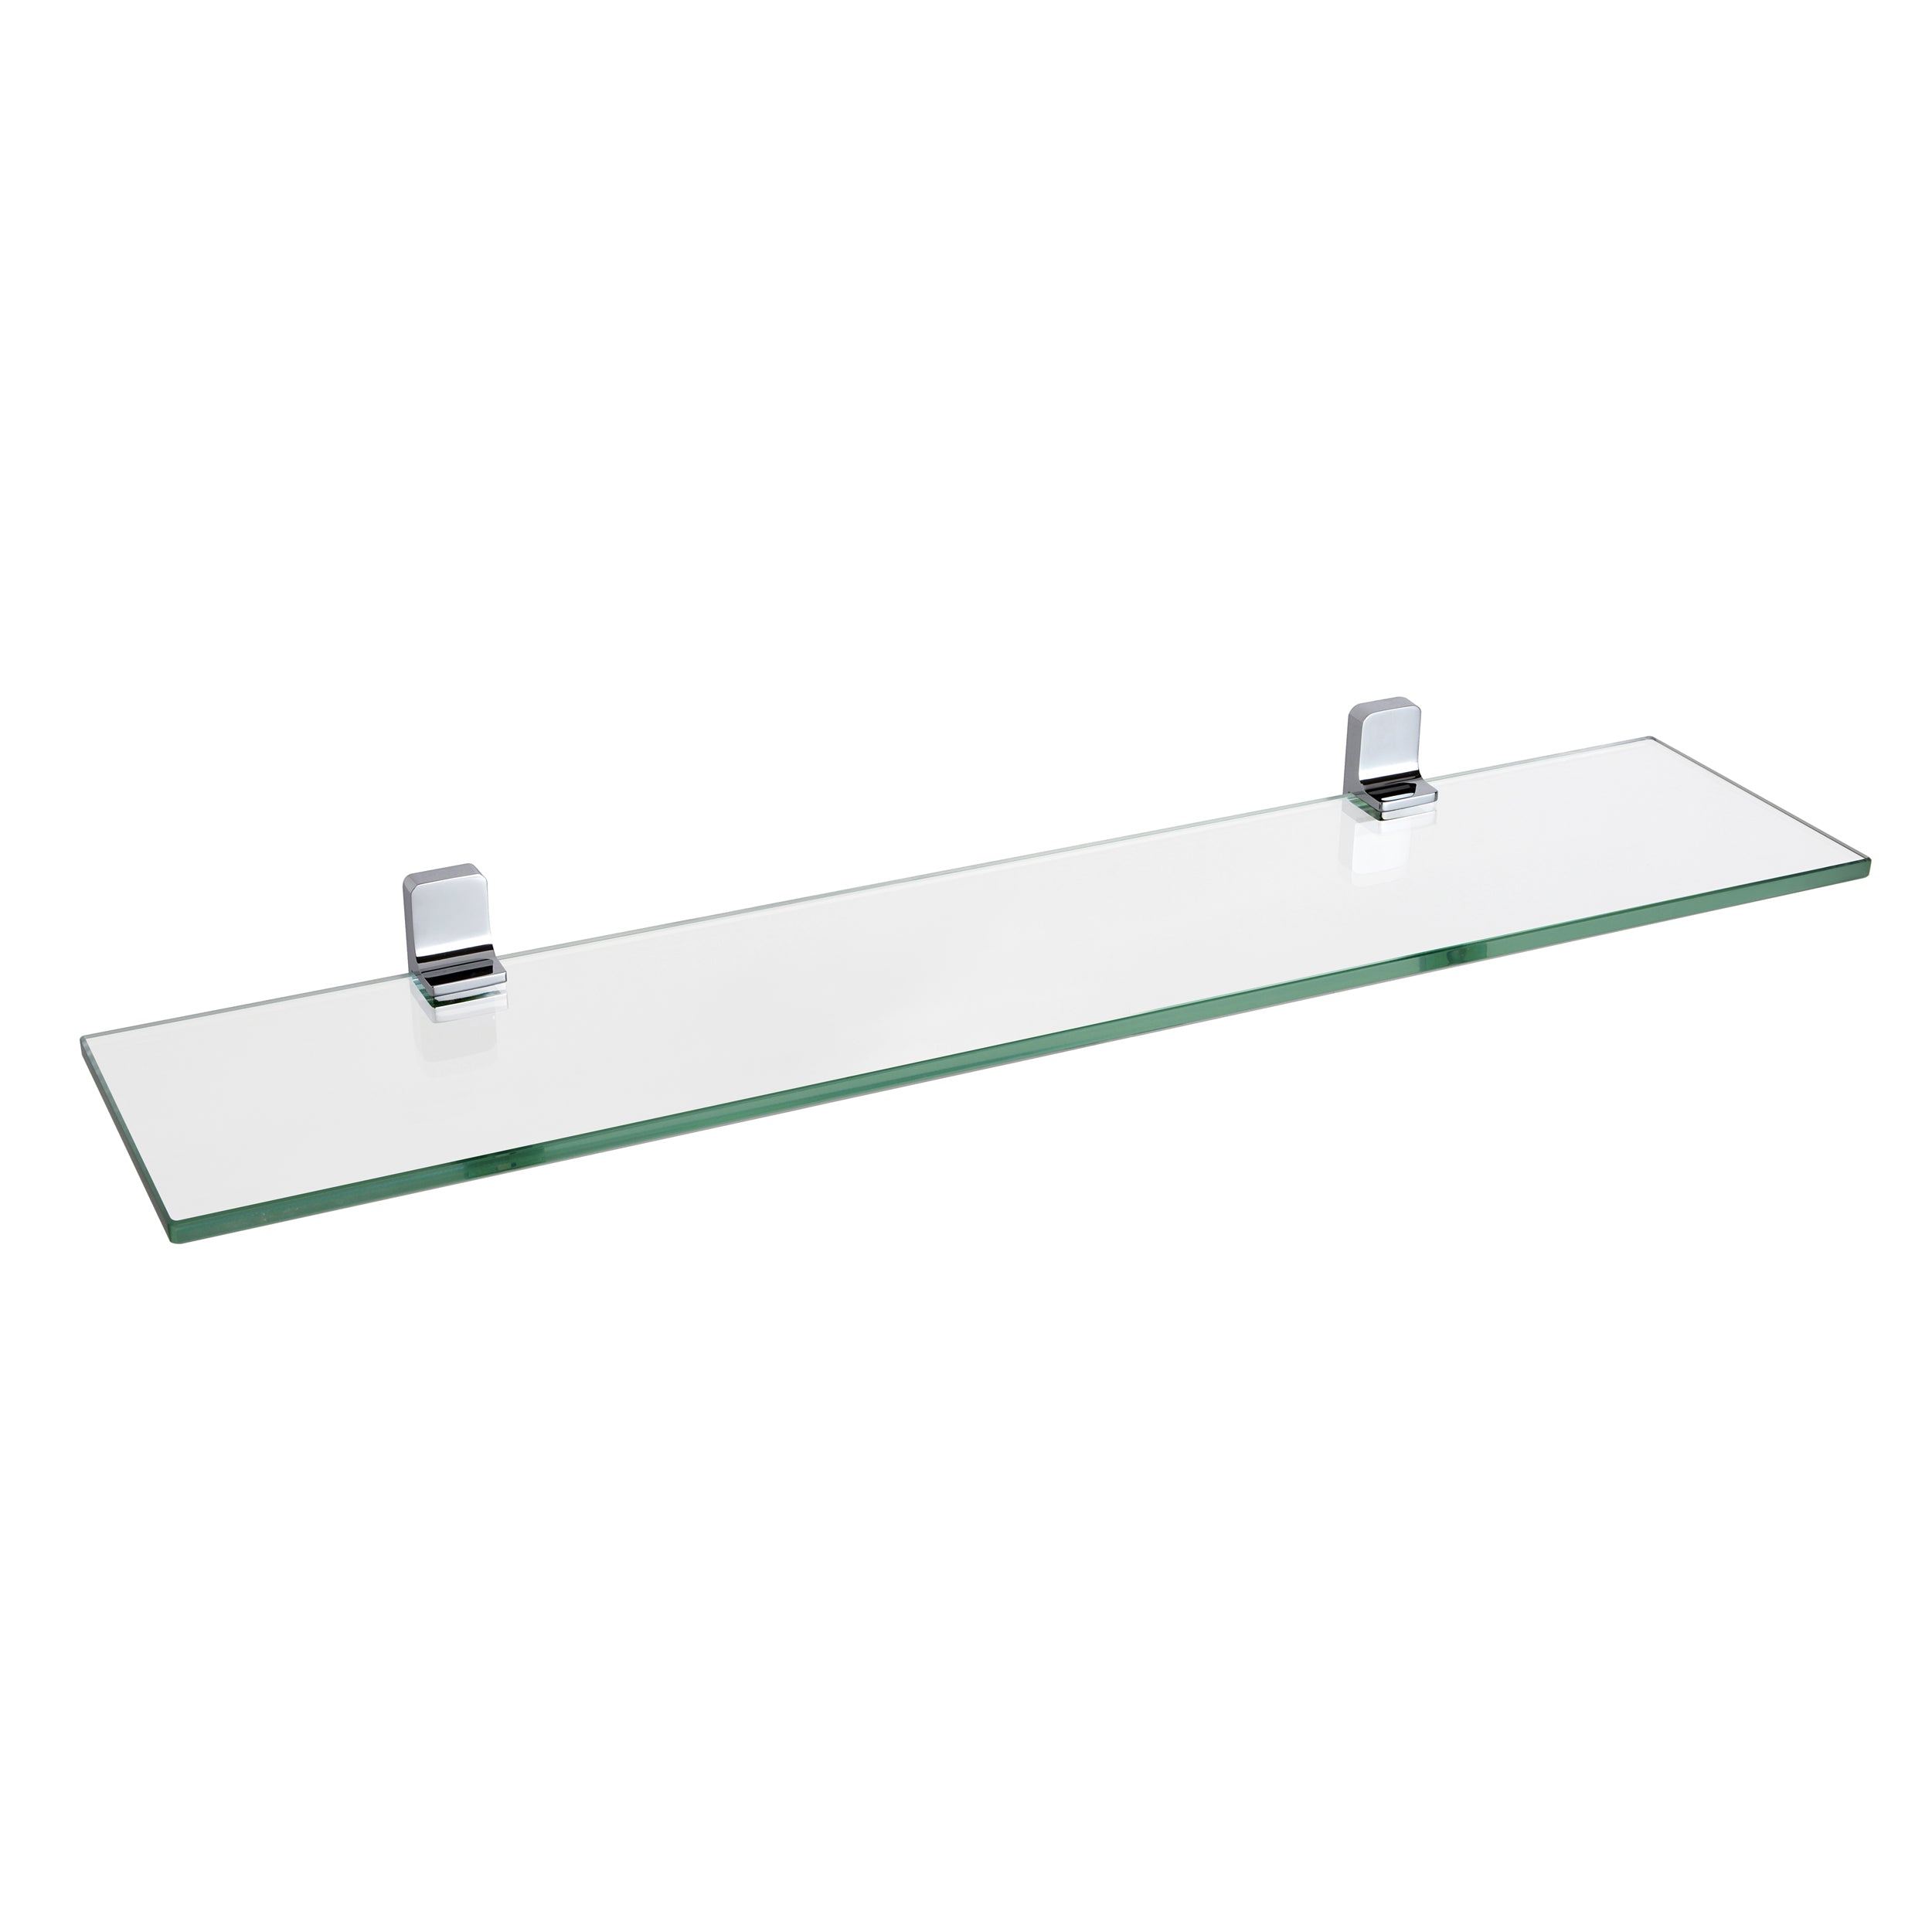 BAI 1506 Glass Shelf / Polished Chrome – MegaBAI